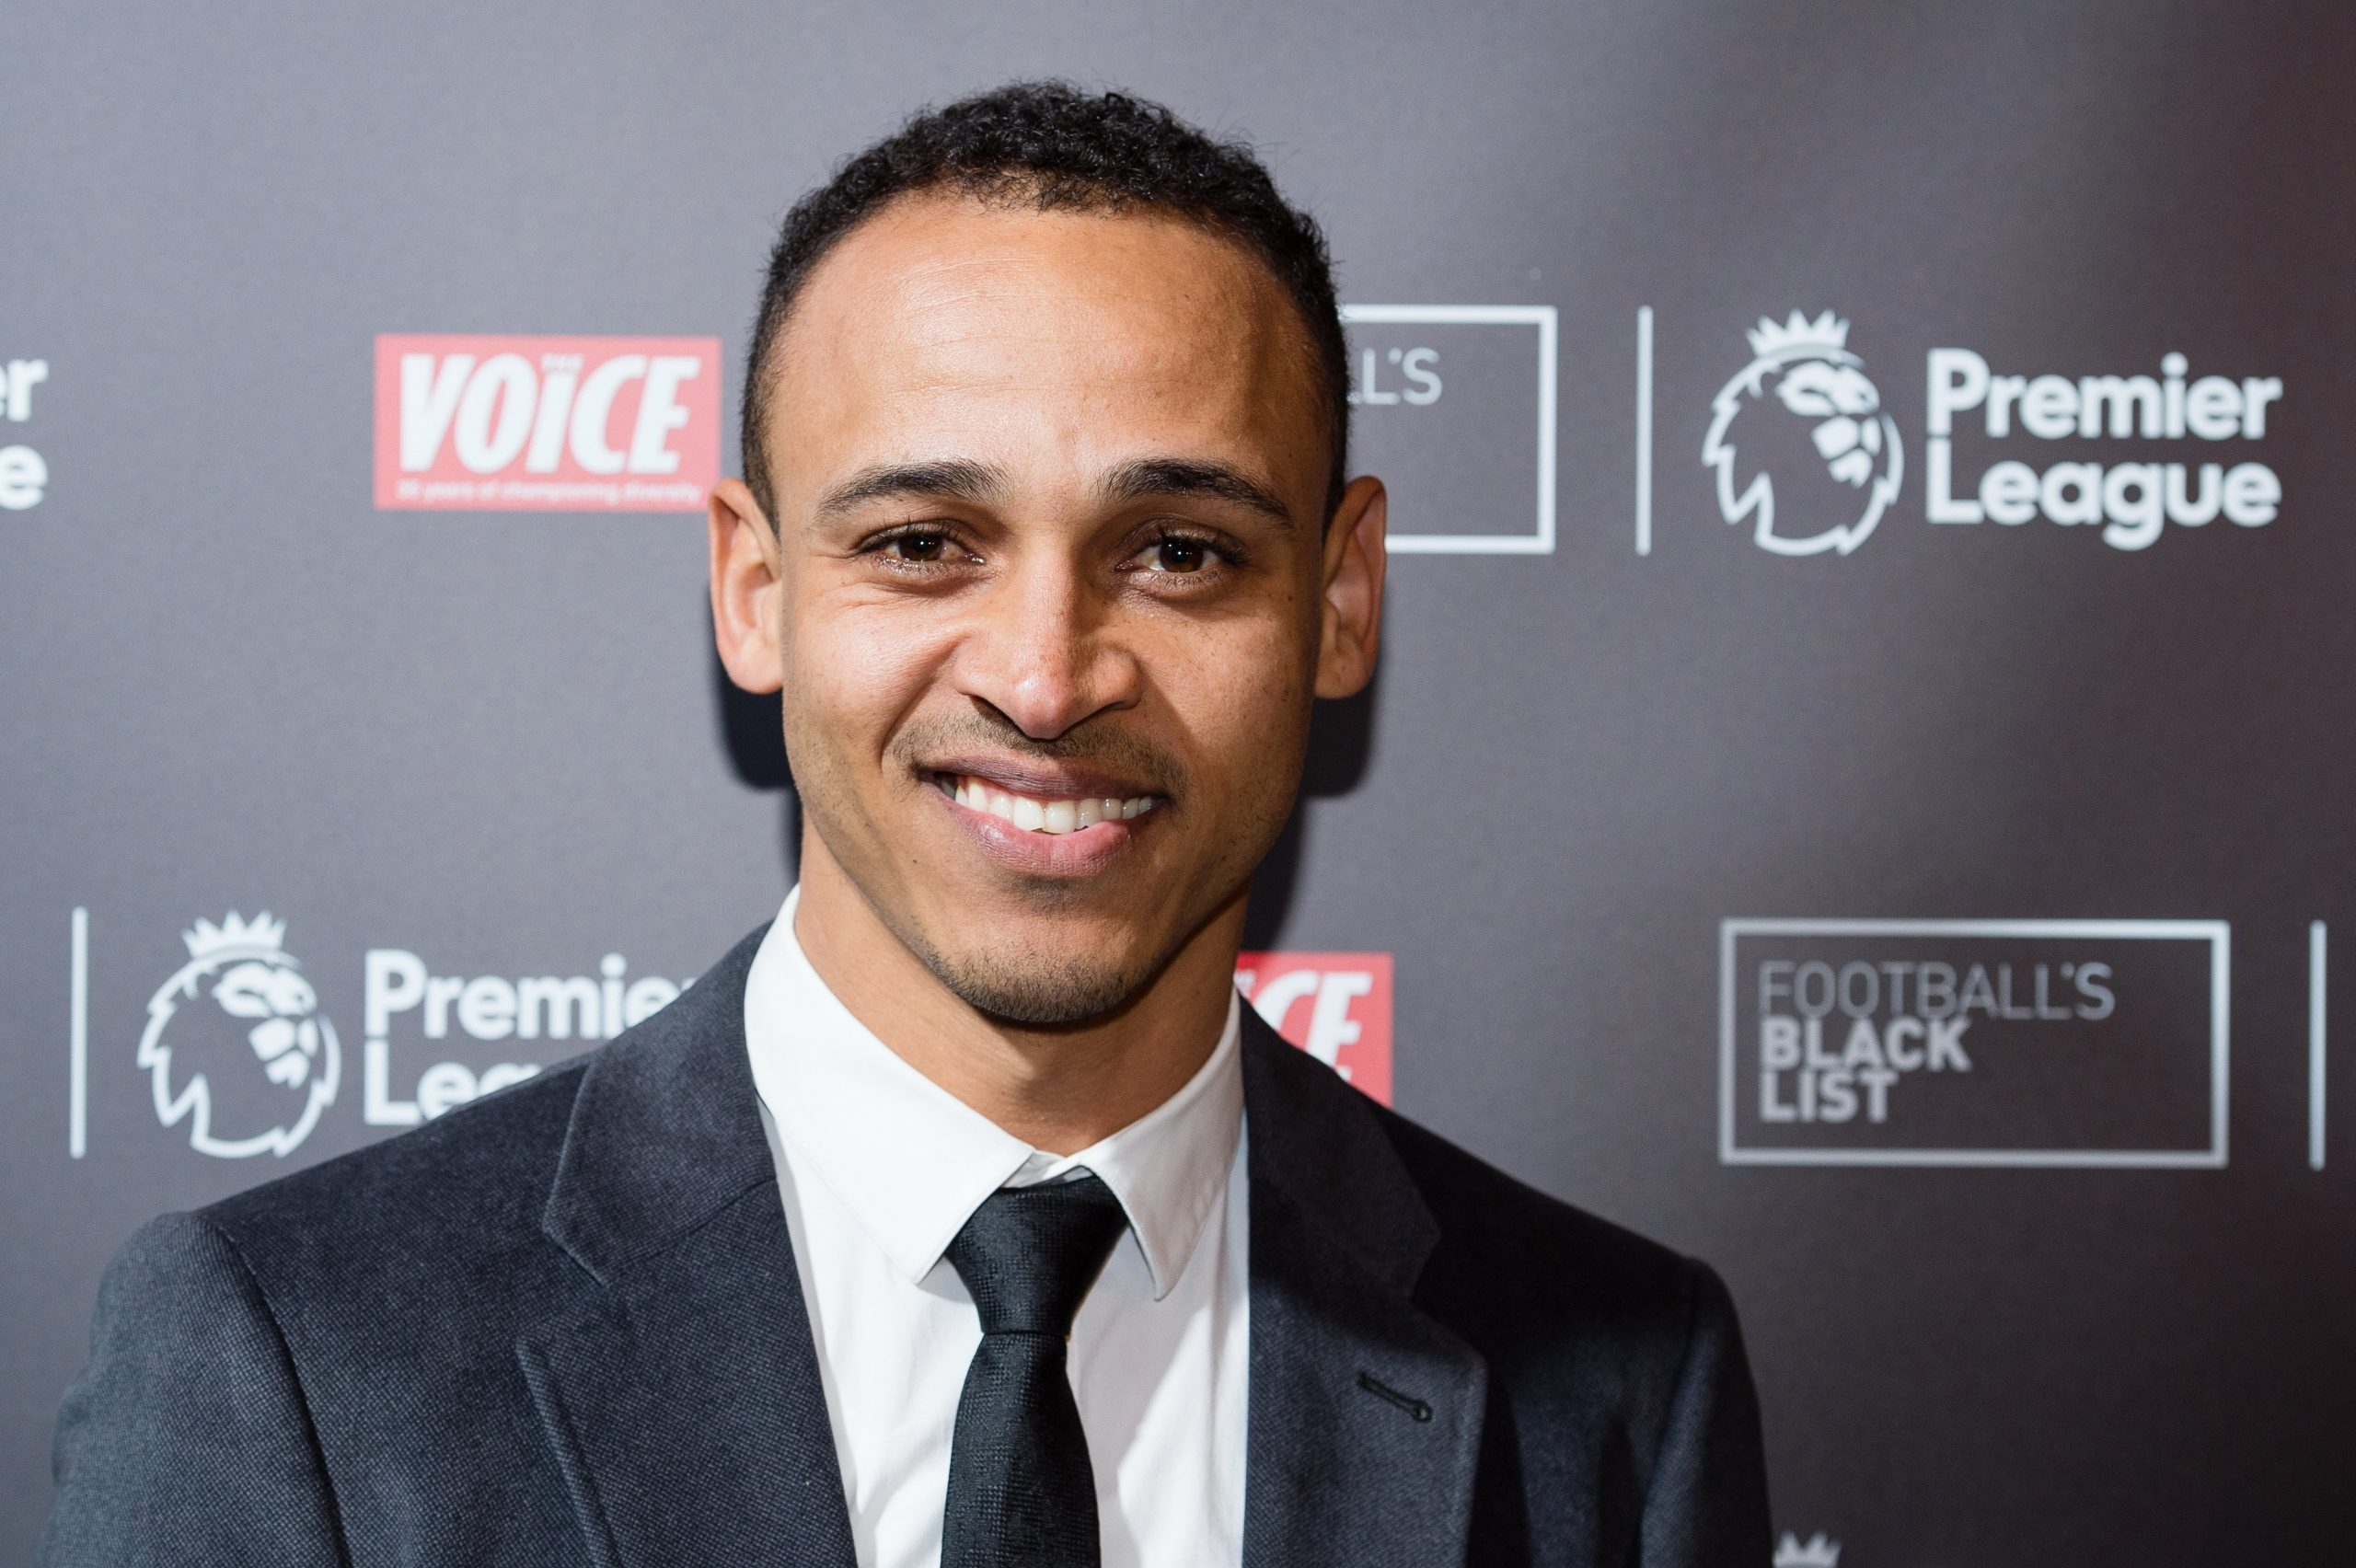 Odemwingie Reveals Plans To Go Into Coaching